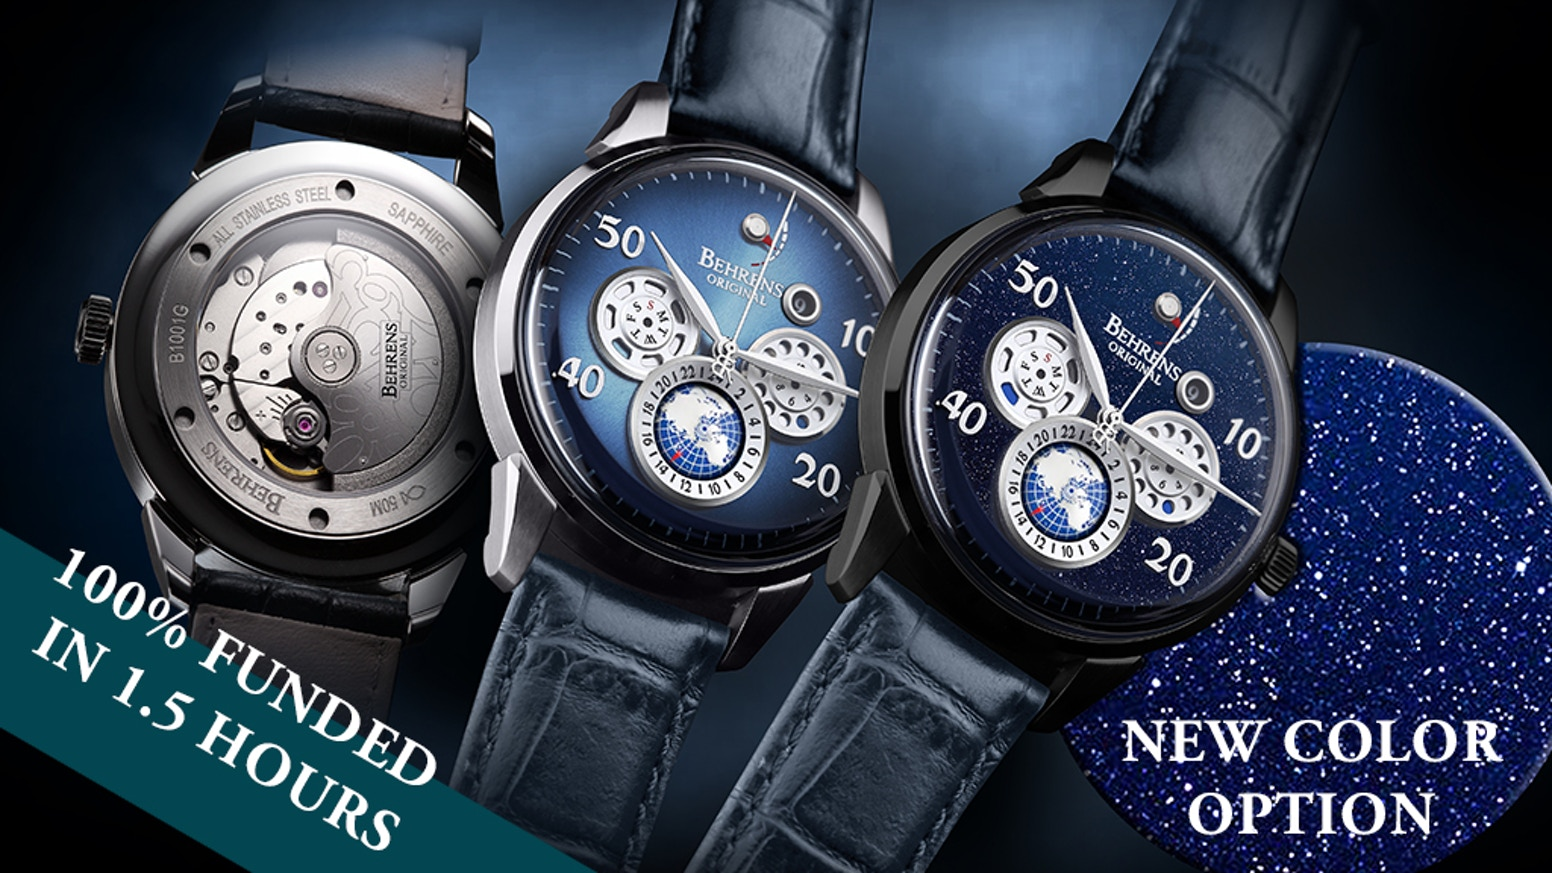 8 INDICATORS - multifunctional super slim automatic mechanical watch combines with top-tier material and movement. By Behrens Original